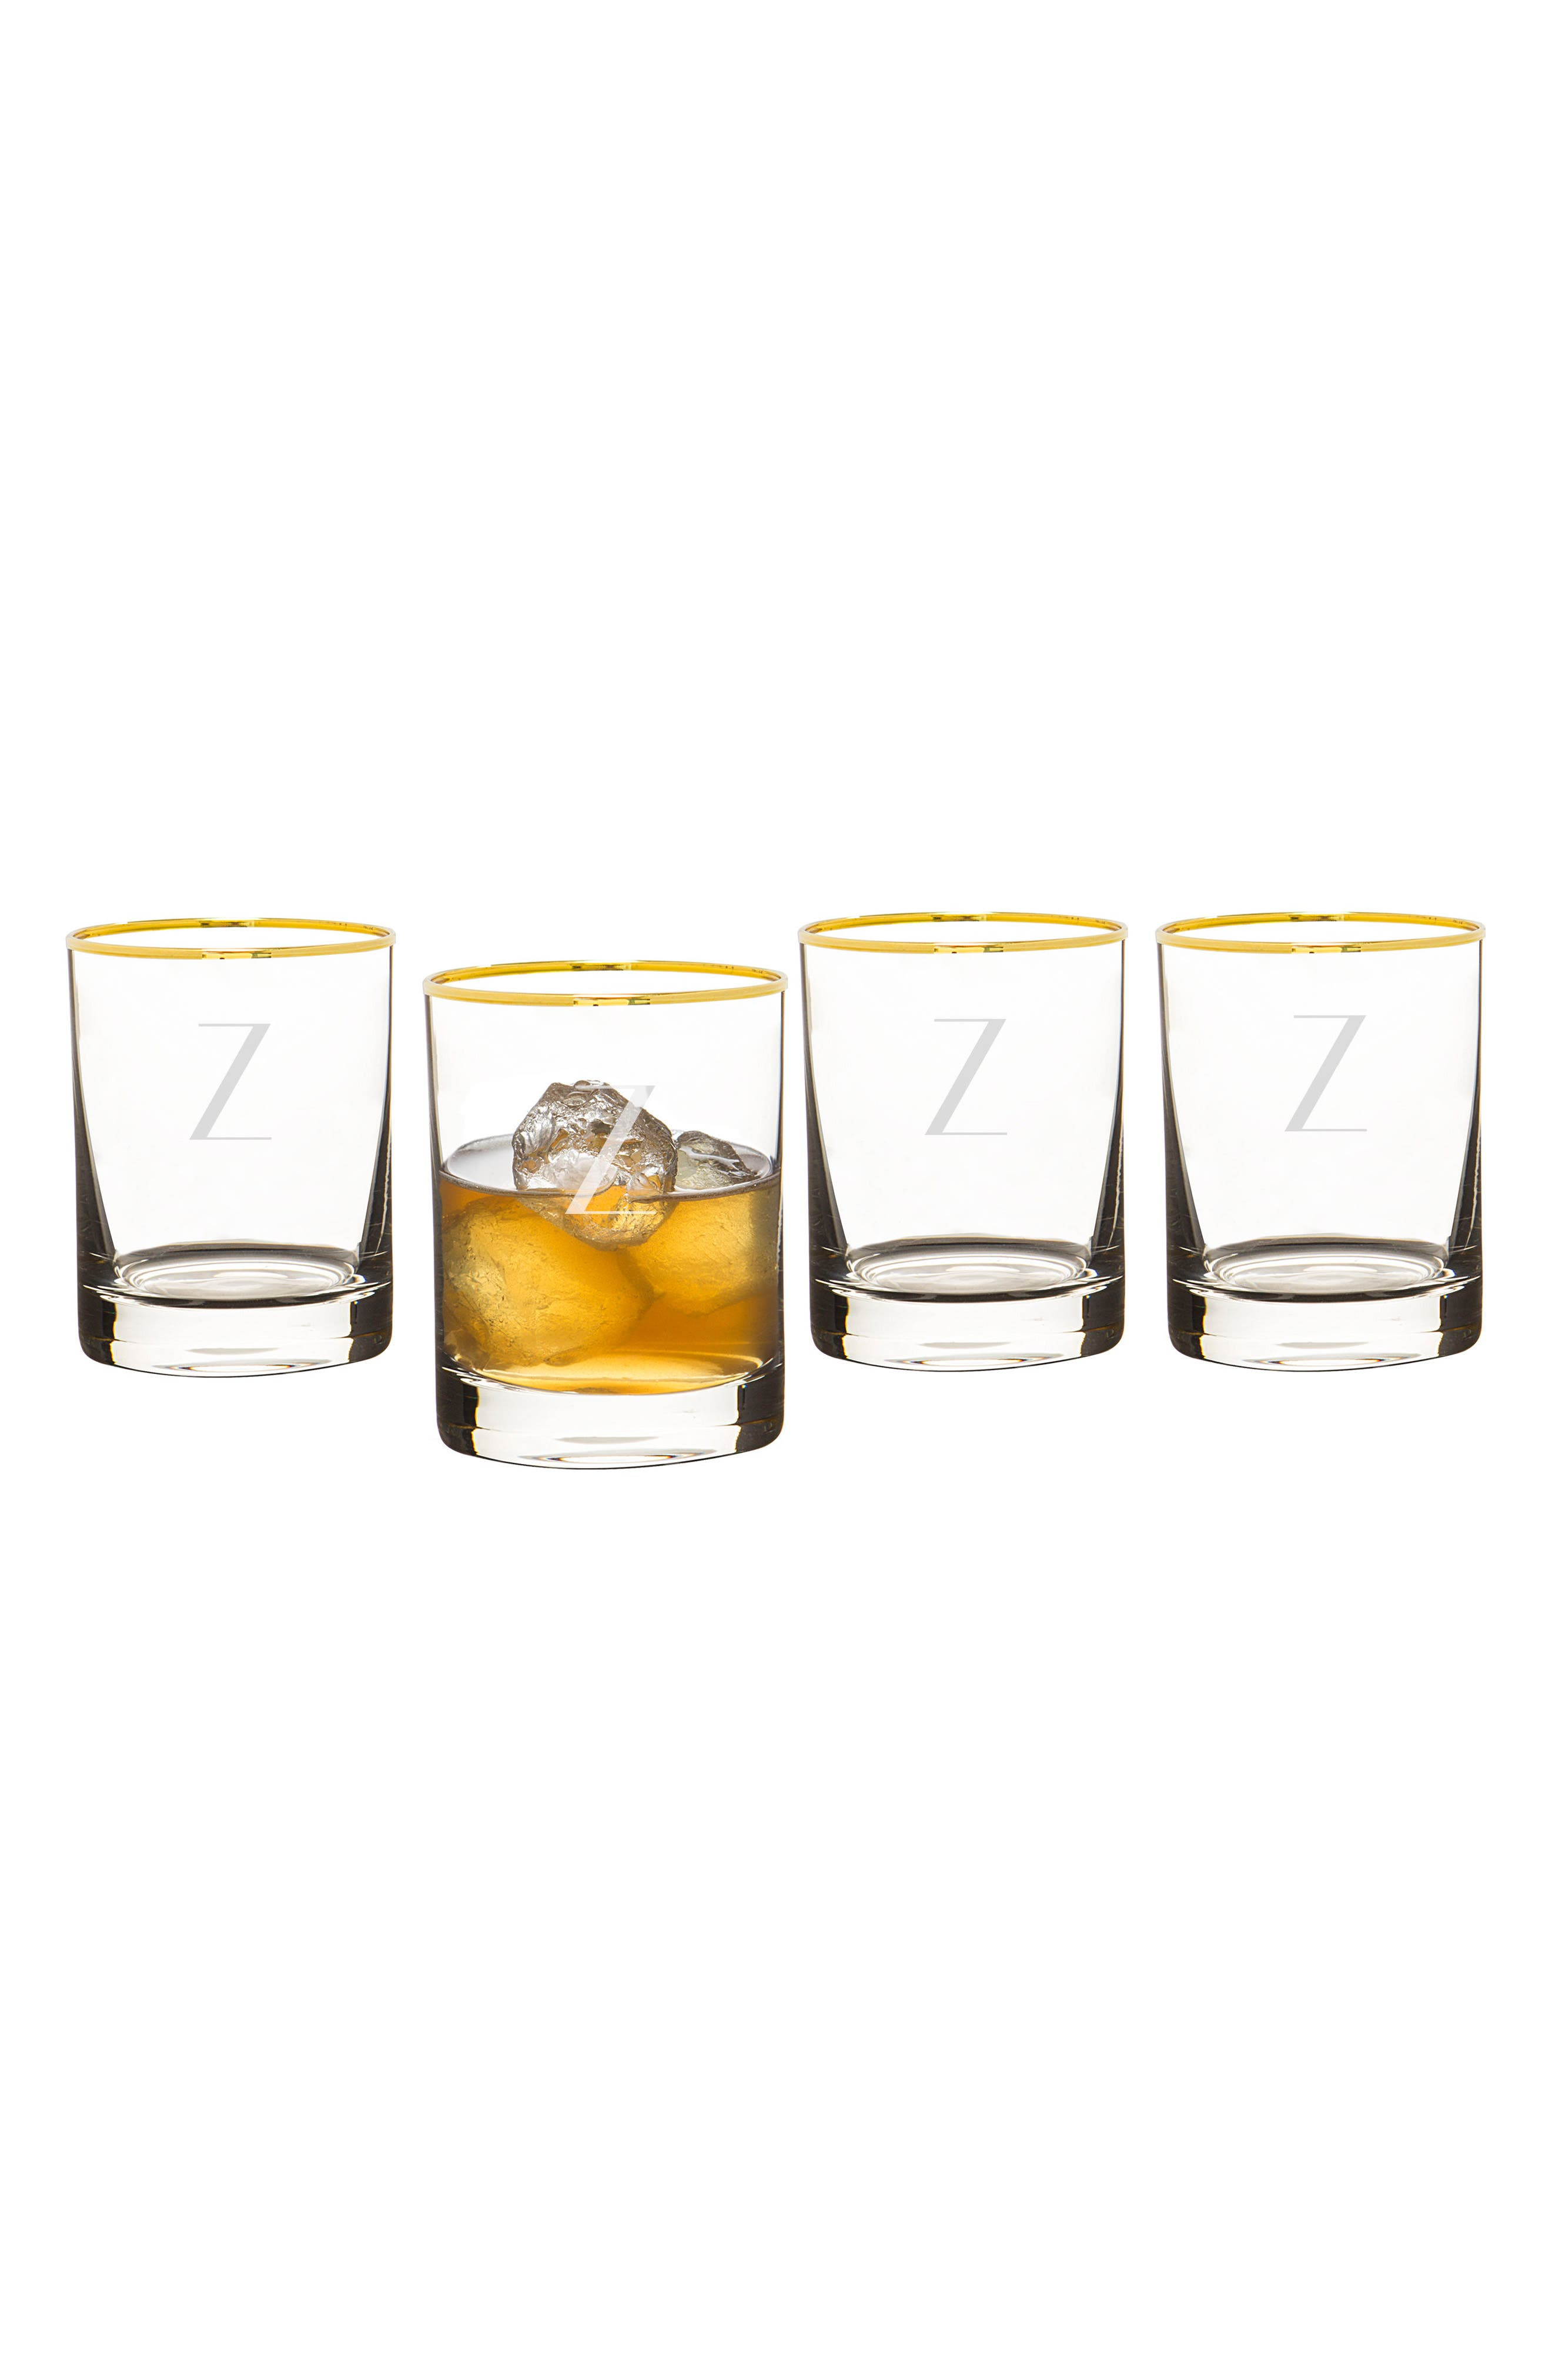 Monogram Set of 4 Double Old Fashioned Glasses,                             Main thumbnail 26, color,